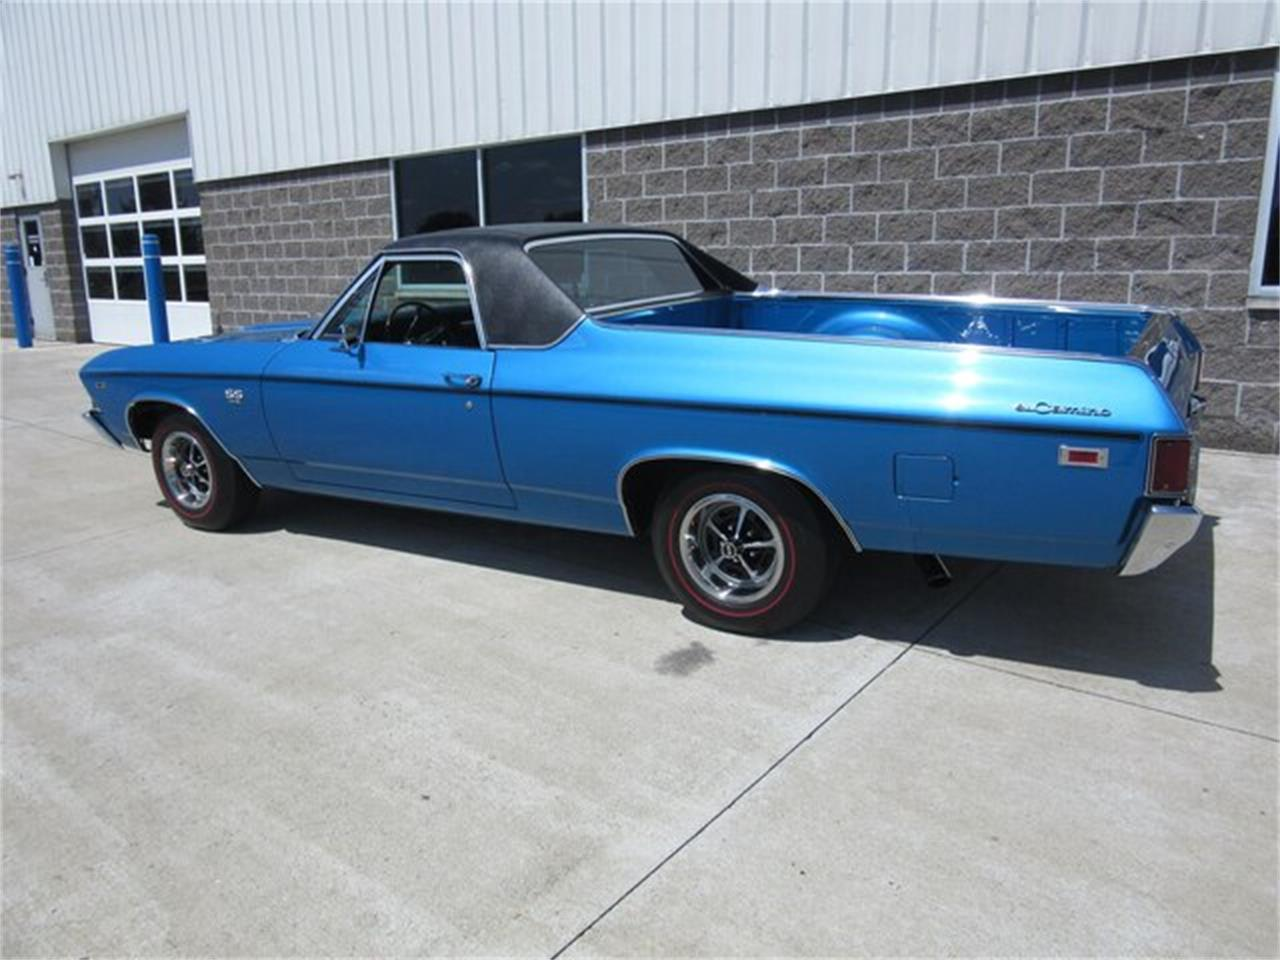 Large Picture of 1969 Chevrolet El Camino located in Indiana - $38,500.00 - QTRB